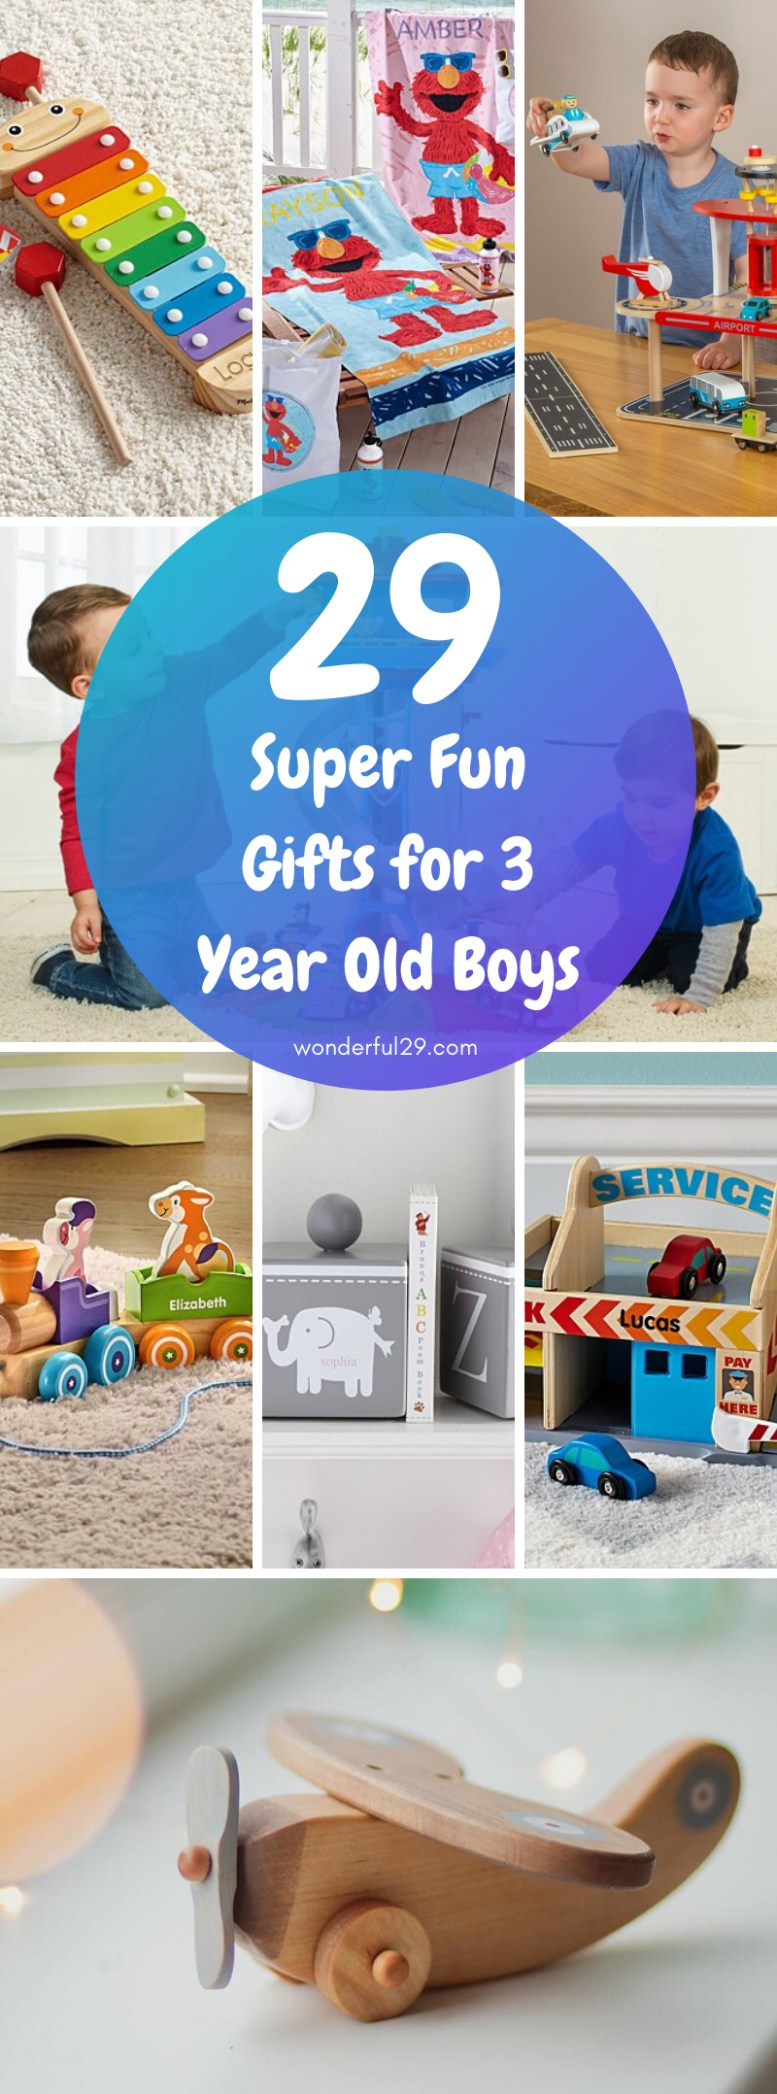 Gifts for 3 Years Old Boys